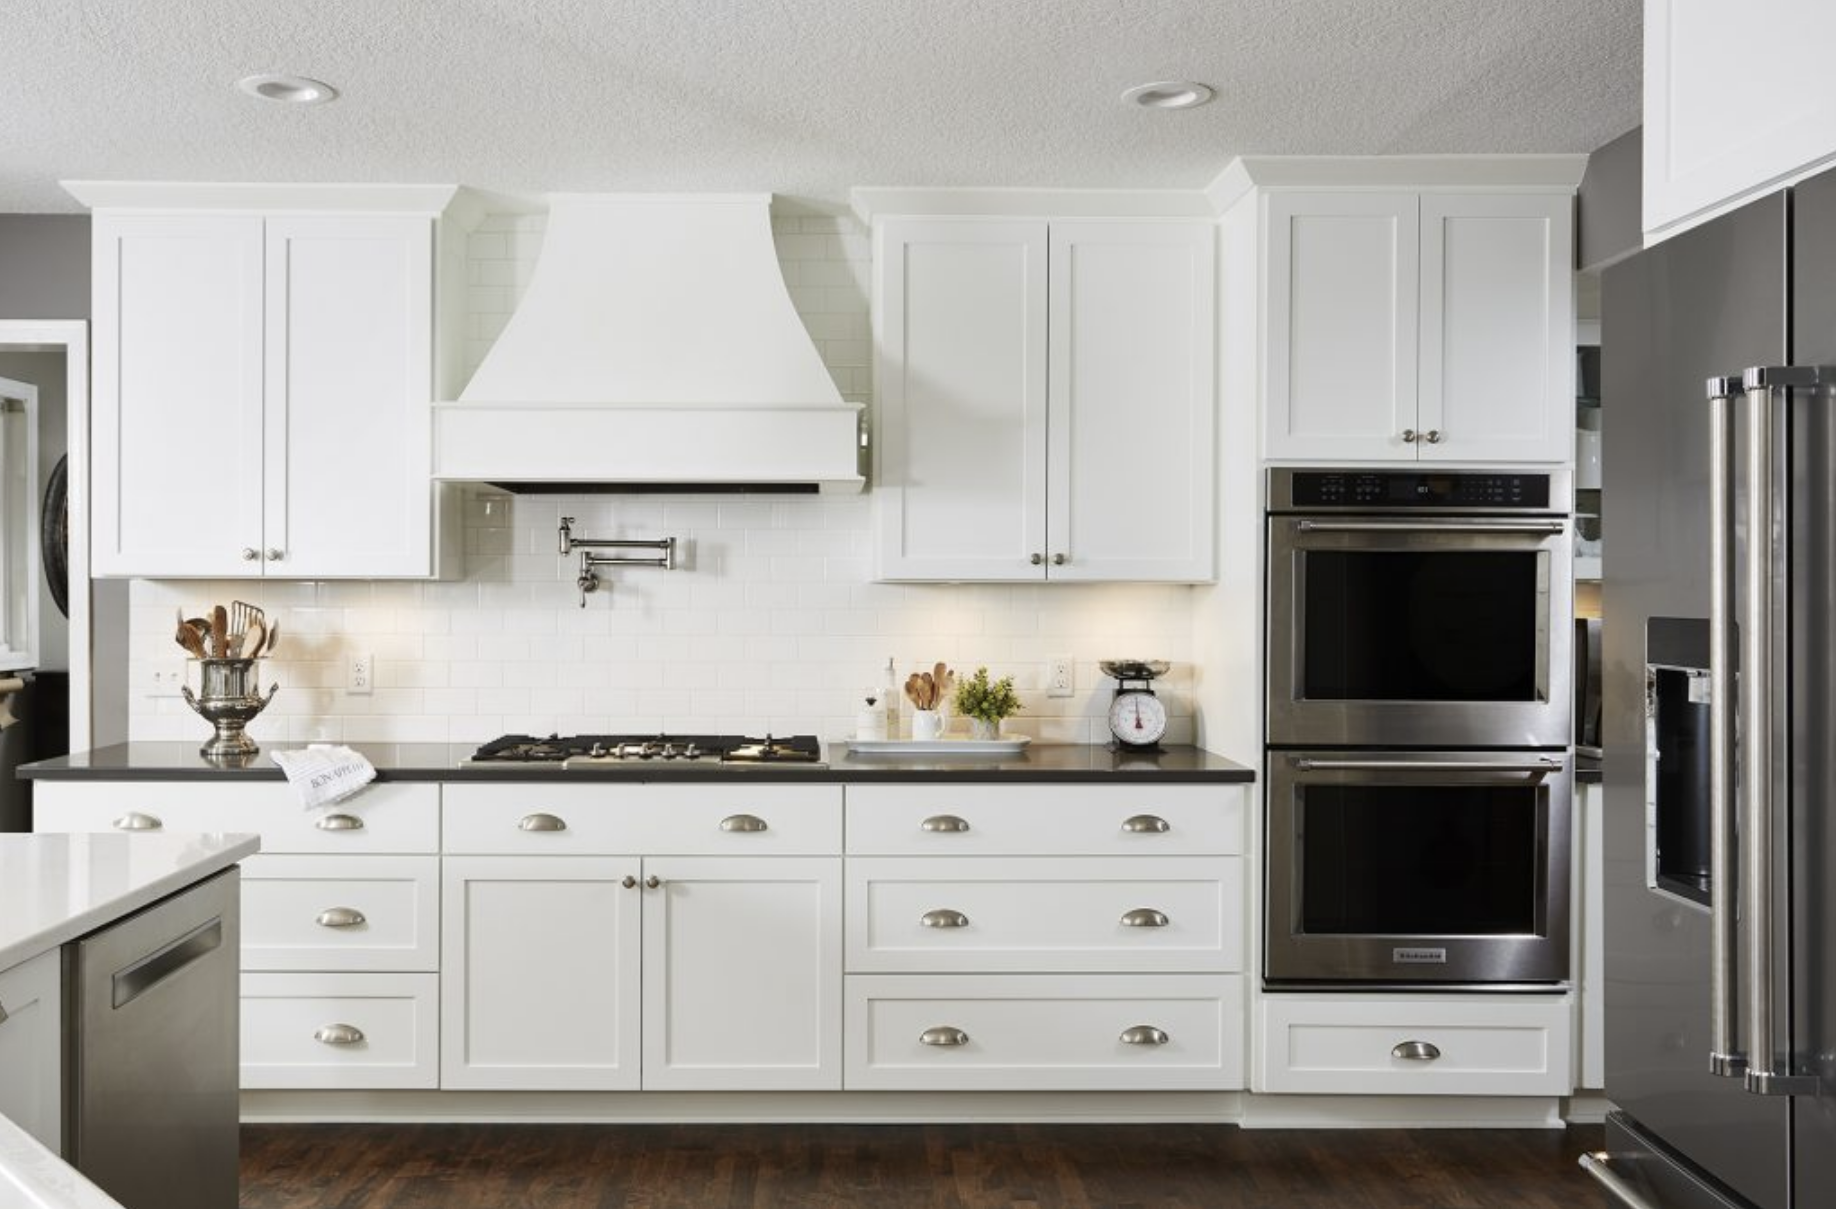 All-white cabinets and backsplash were paired perfectly with a sleek grey quartz countertop for a classic look in this open kitchen.